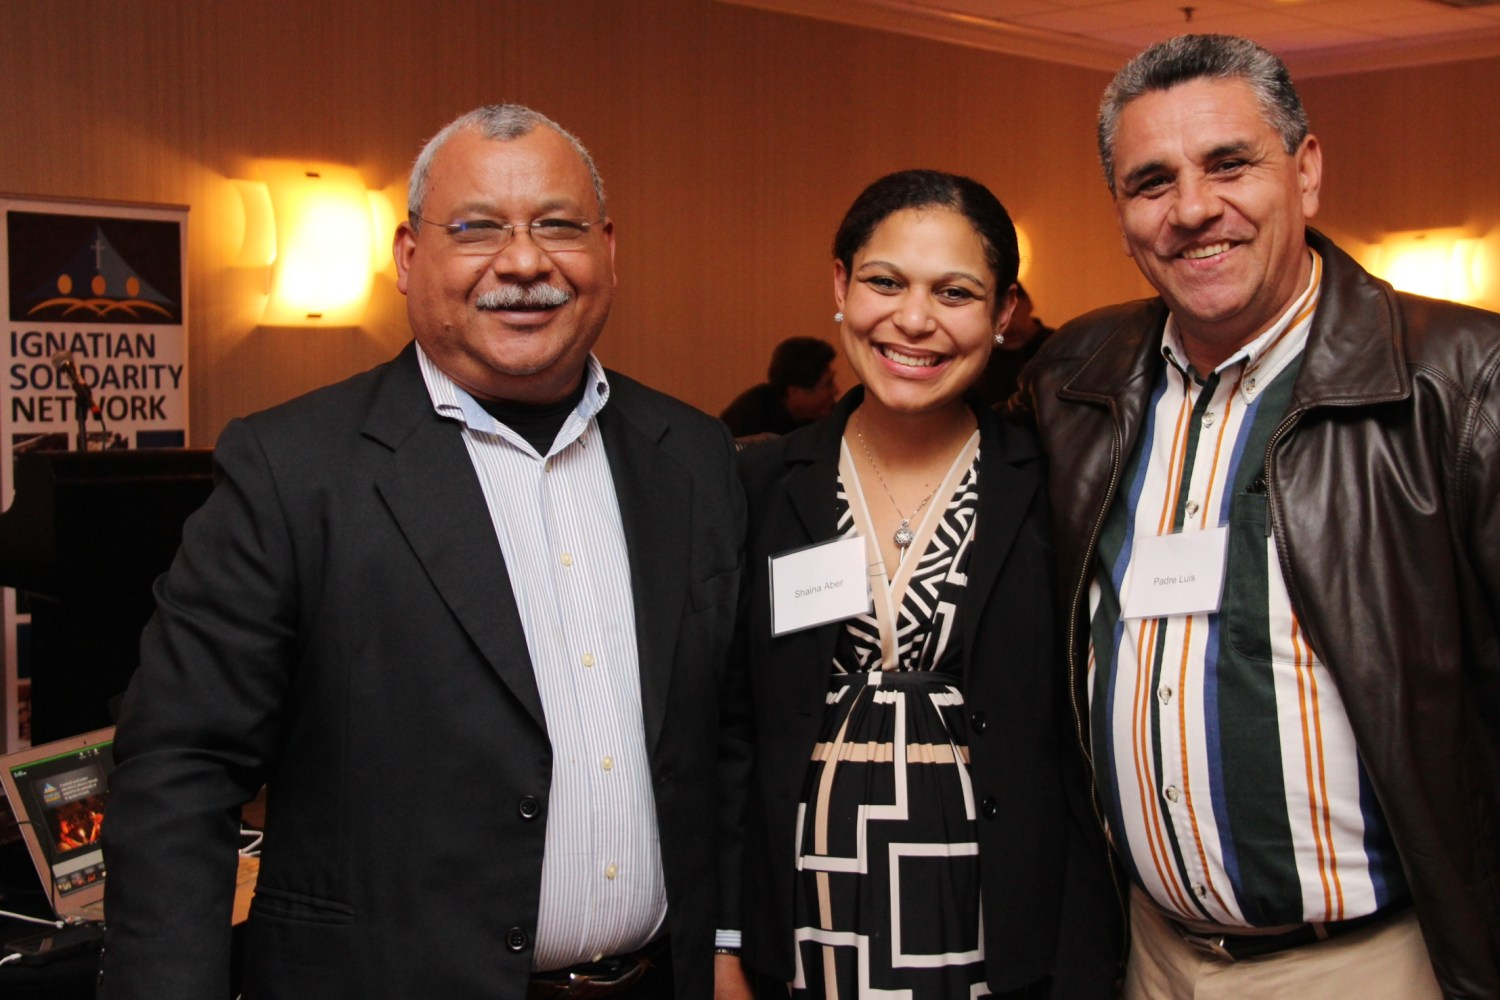 Padre Melo with Shaina Aber, and Padre Luis, pastor of Mia Madre parish in San Salvador, El Salvador.